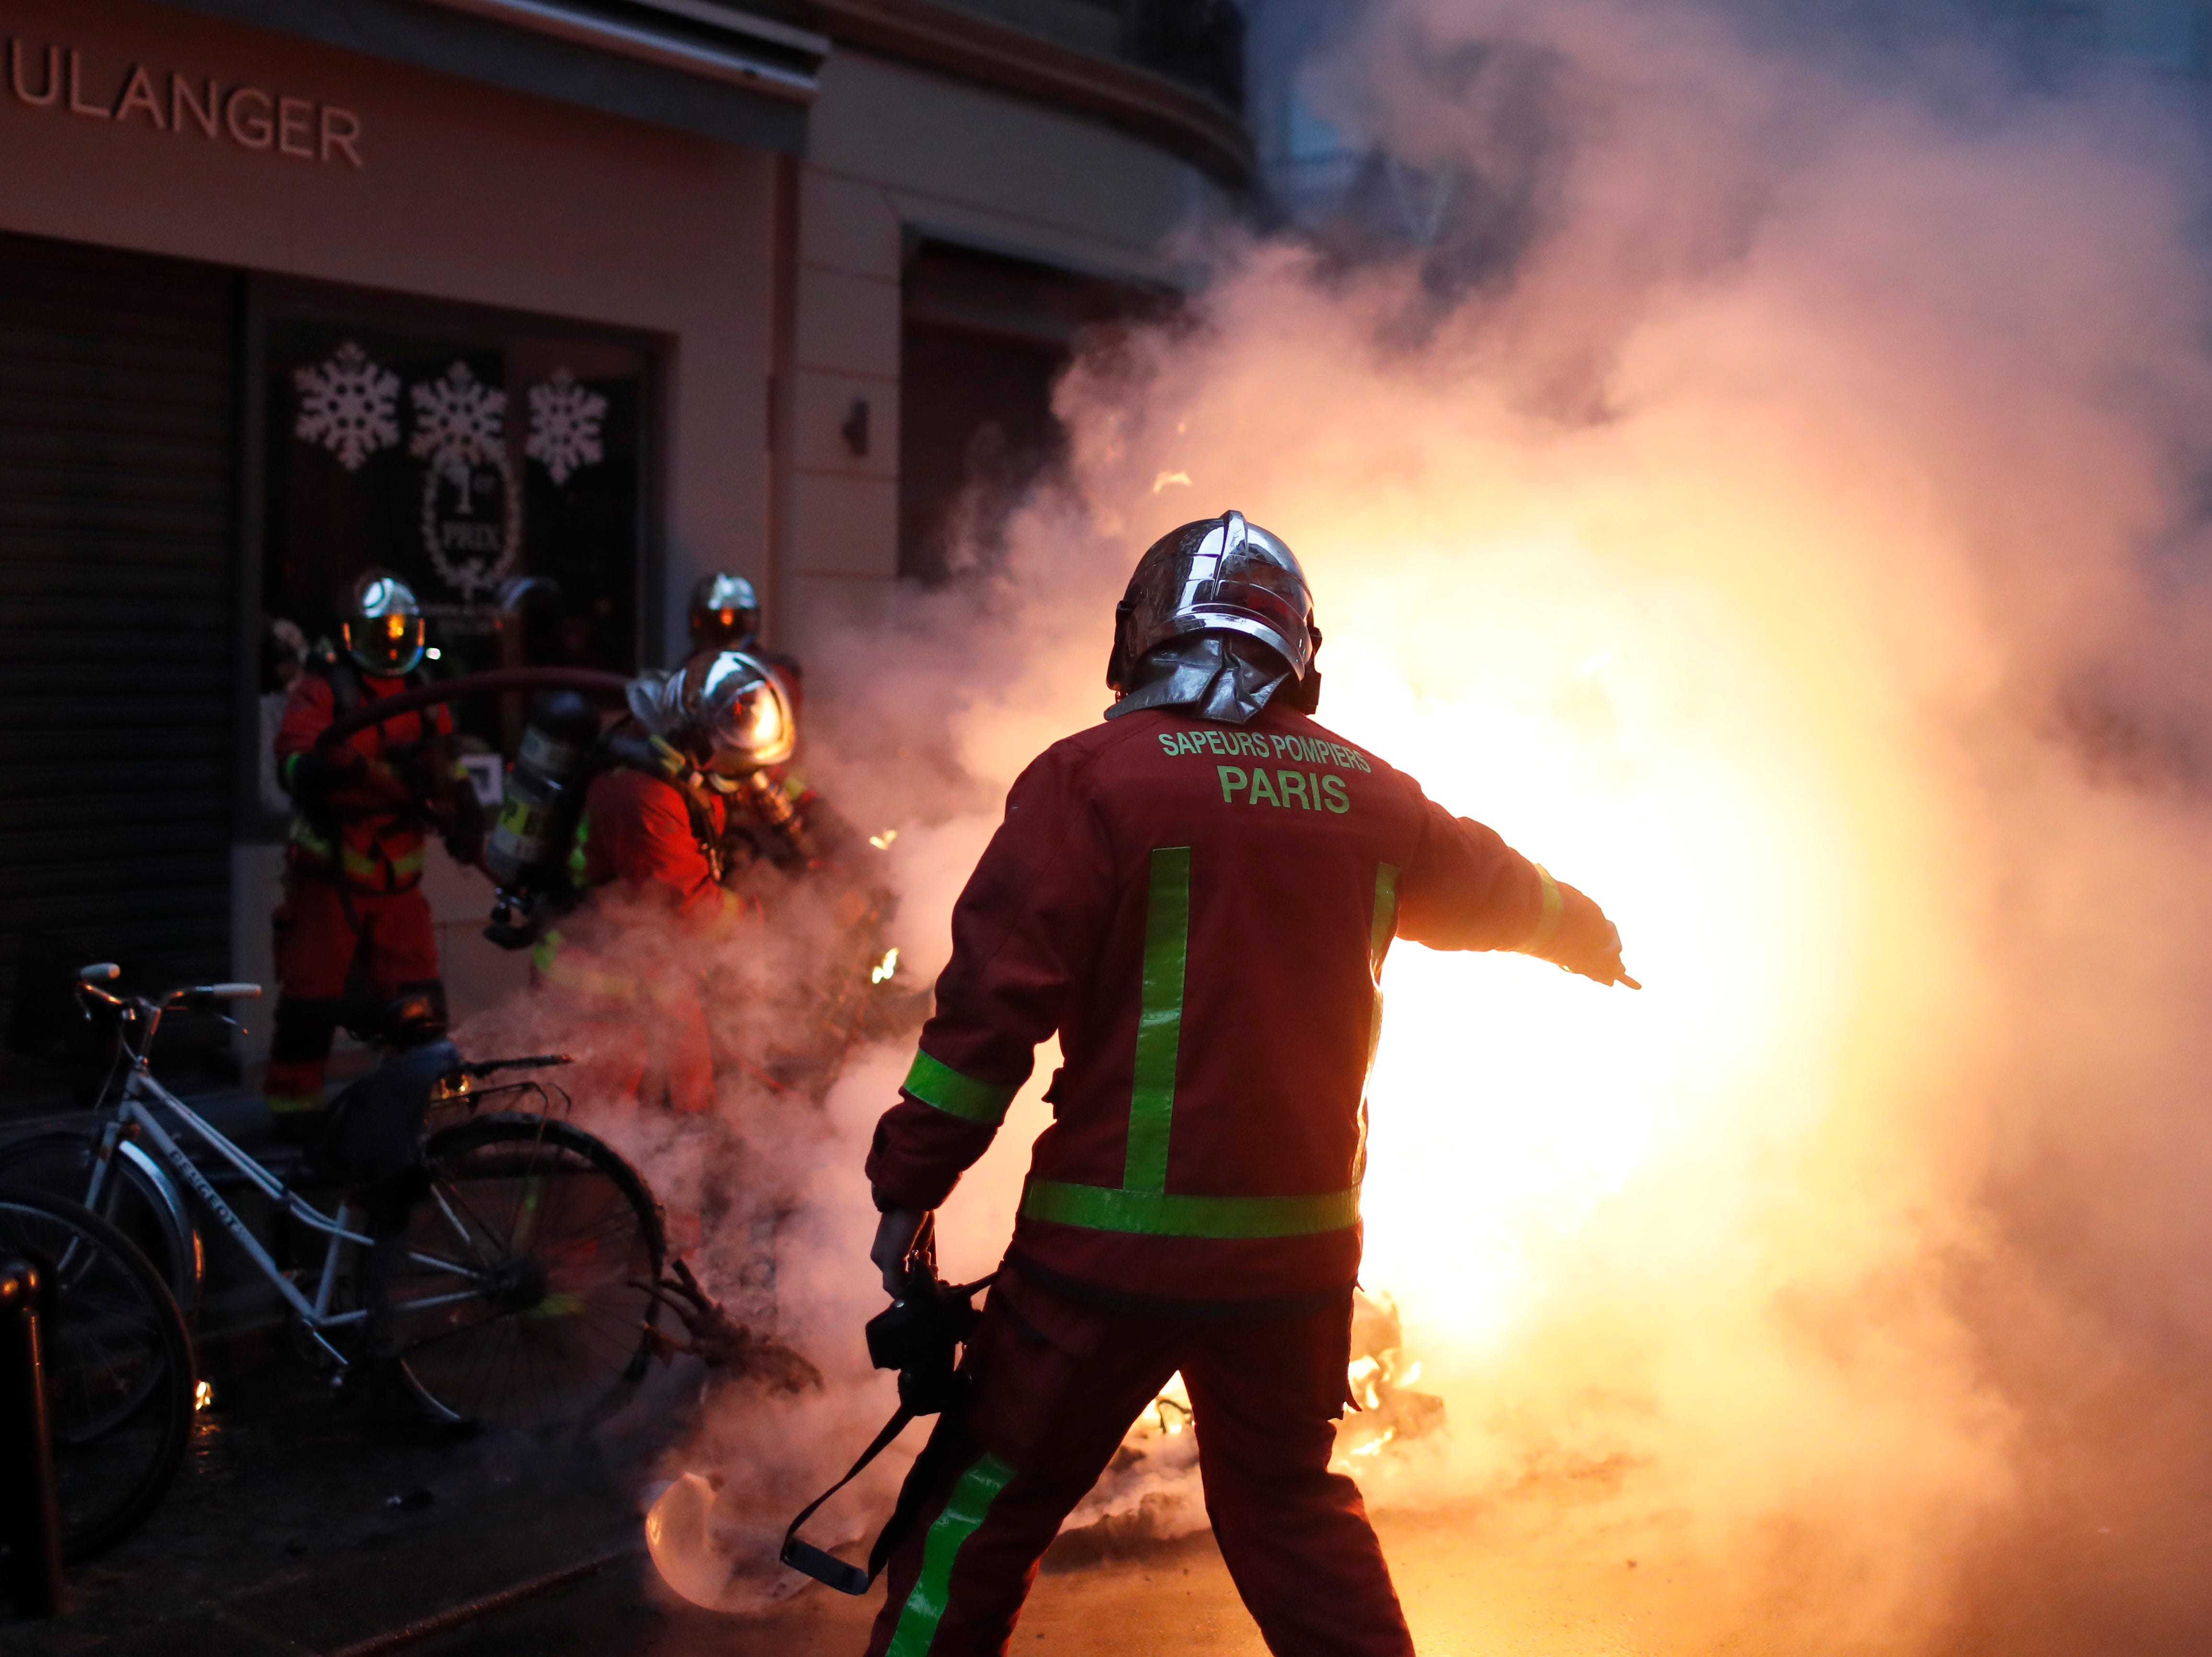 Firefighters try to extinguished a car set on fire by demonstrators during clashes with riot police, in Paris, France, Saturday, Dec. 8, 2018. Crowds of protesters angry at President Emmanuel Macron and France's high taxes tried to converge on the presidential palace Saturday, some scuffling with police firing tear gas, amid exceptional security measures aimed at preventing a repeat of last week's rioting.